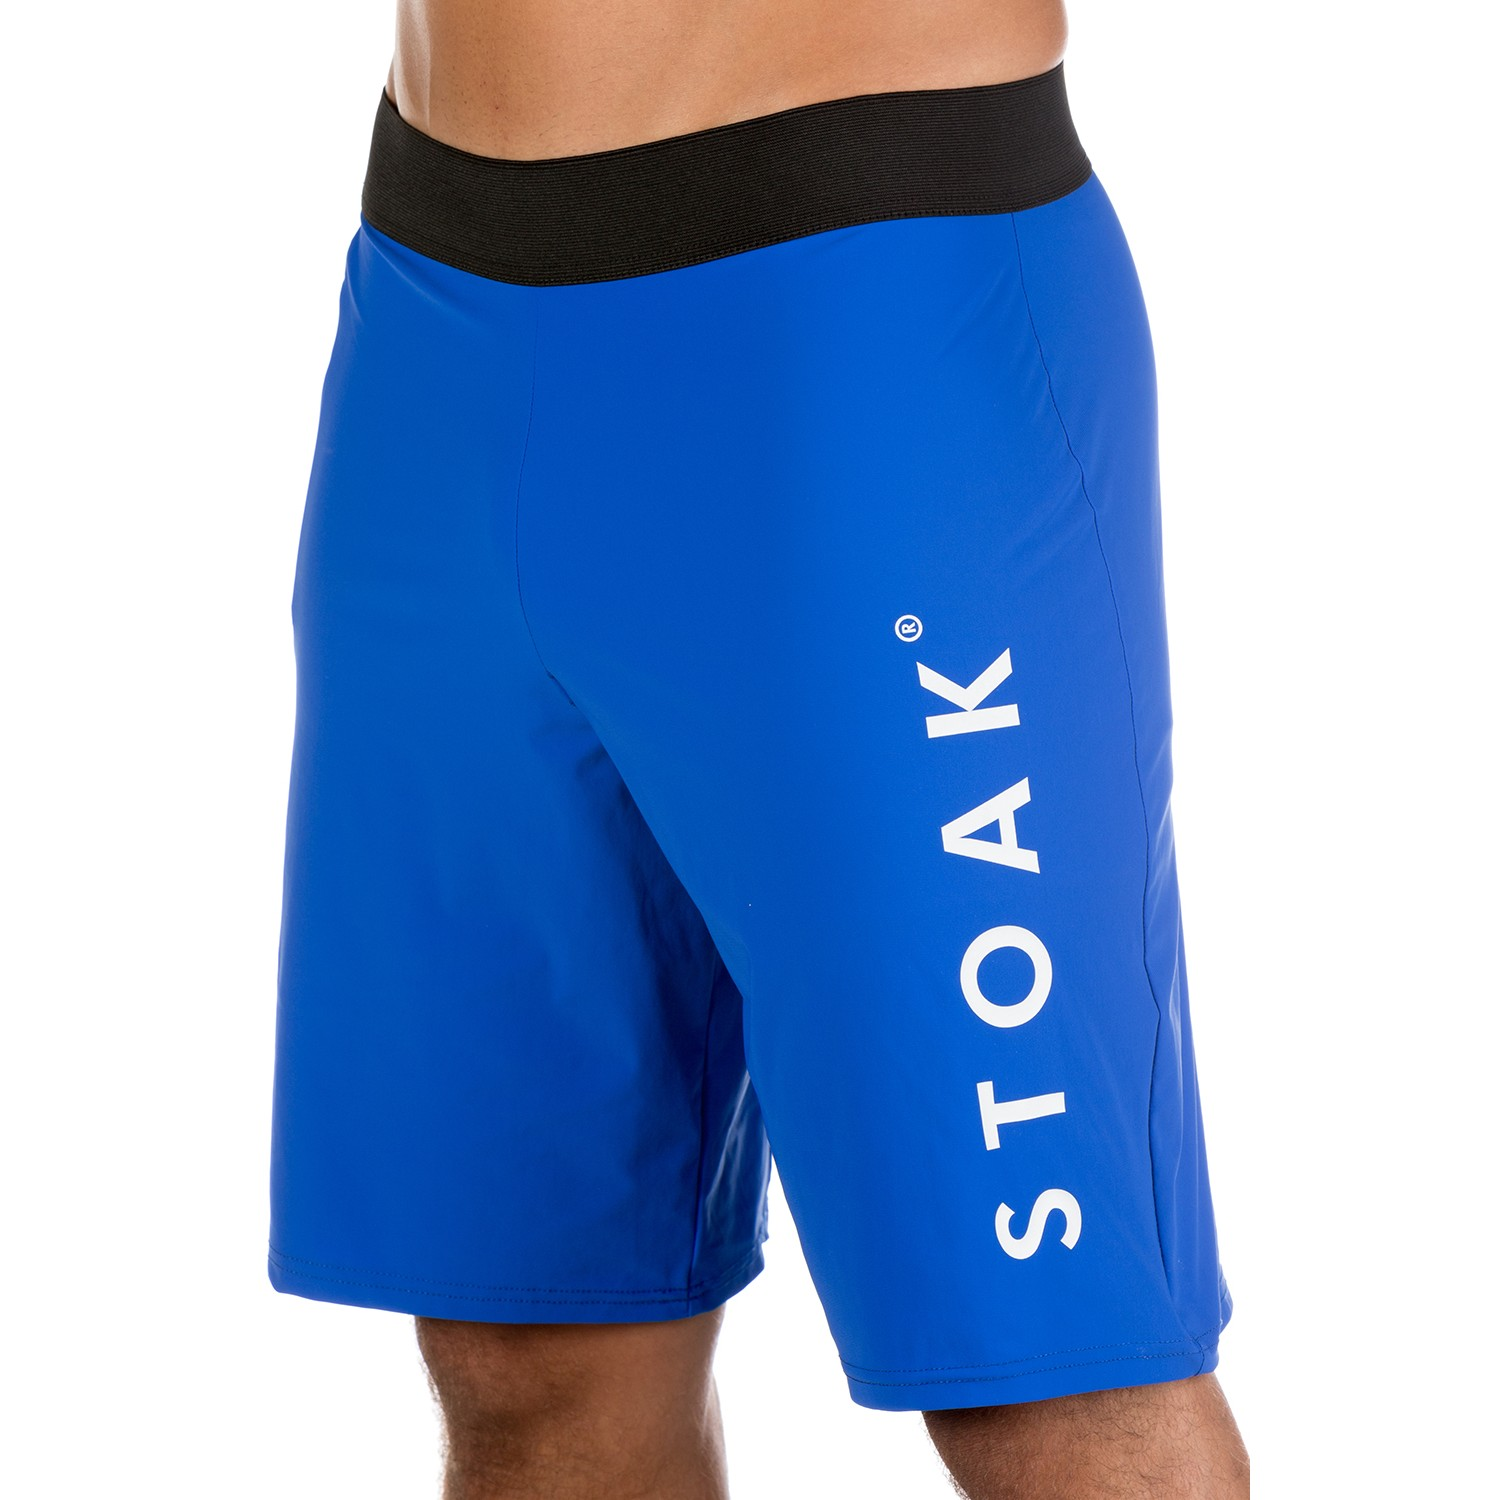 STOAK BLUE CRUSH Athletic Shorts